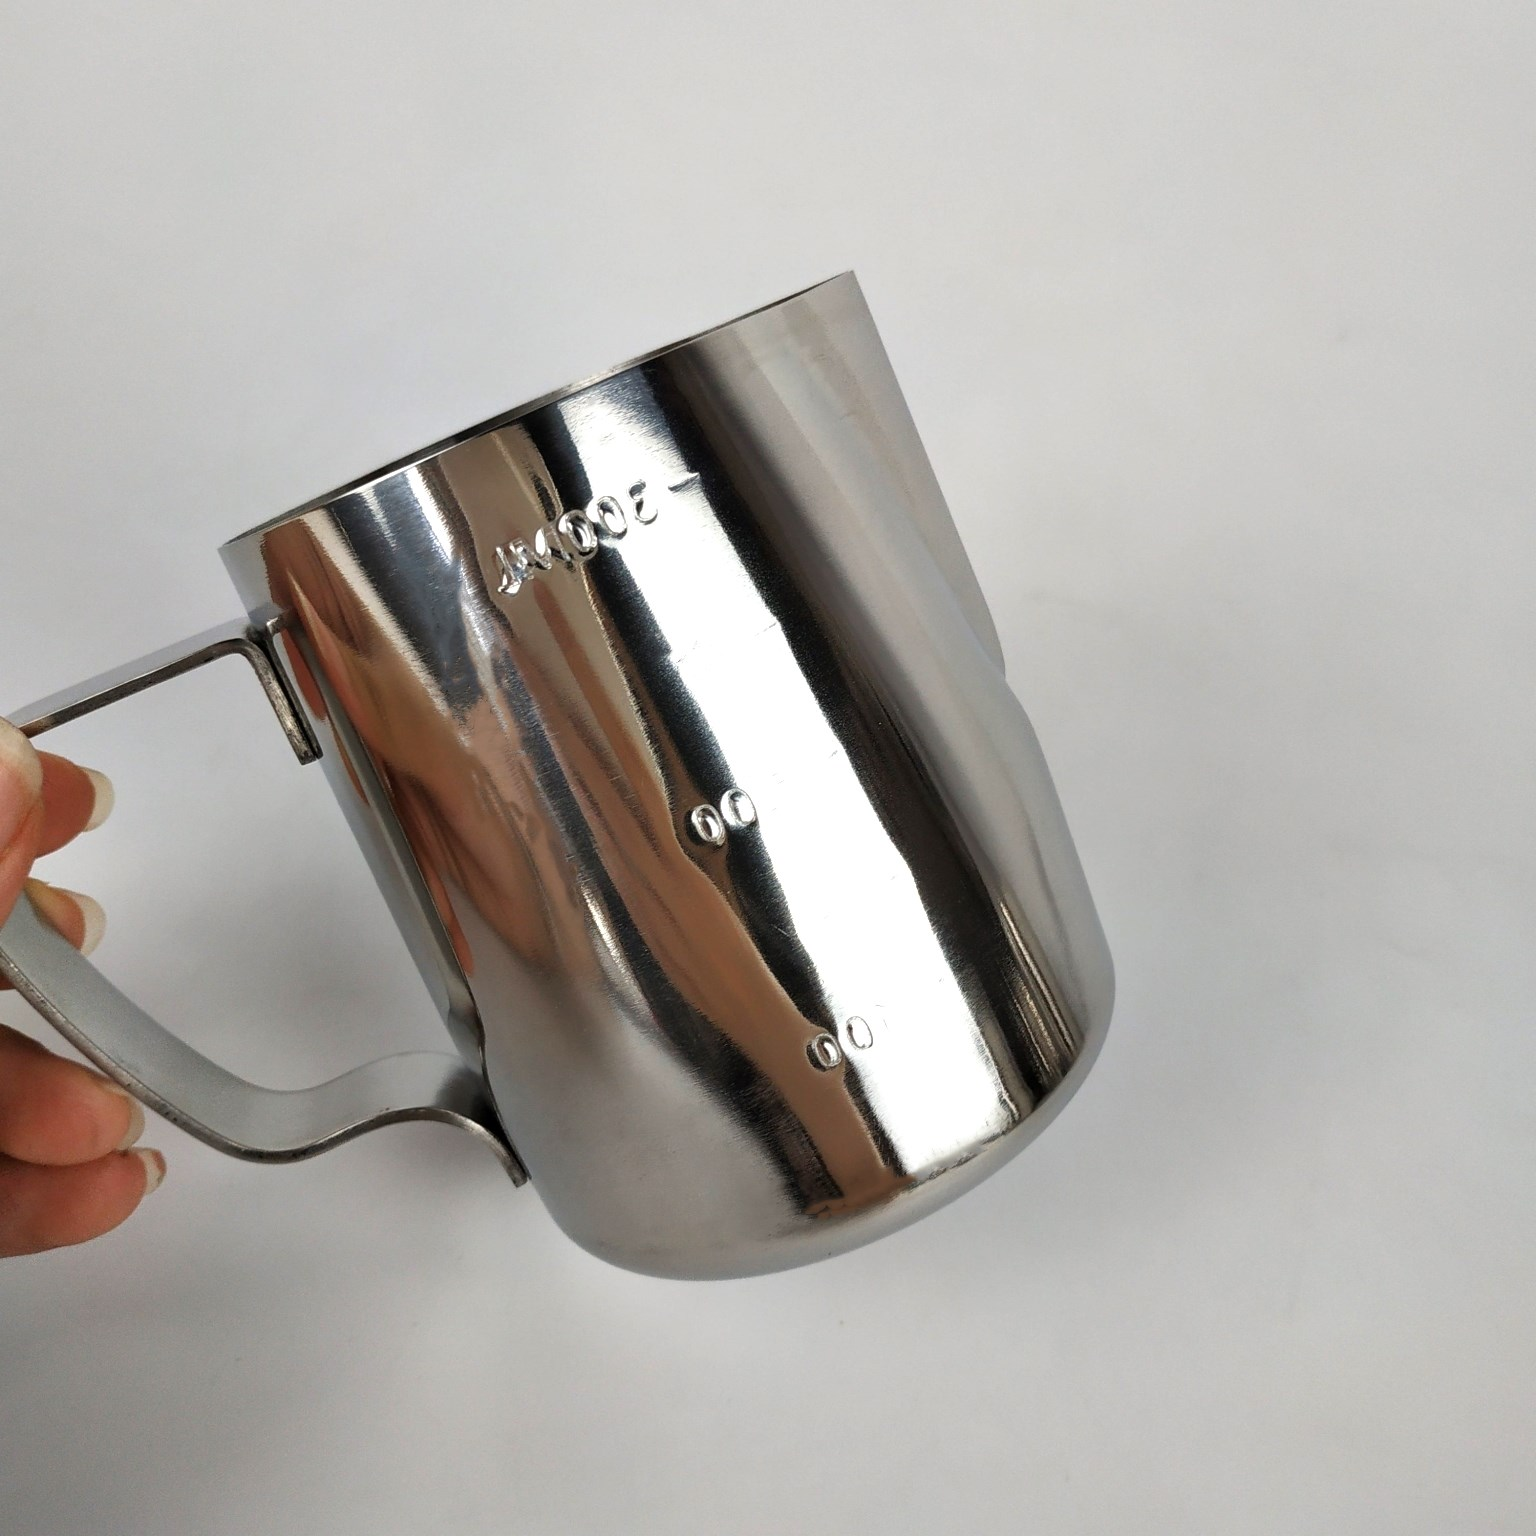 Stainless Steel 18/8 Coffee Steaming Pitcher / Measuring Coffee Mug Frothing Pitcher Milk Jug